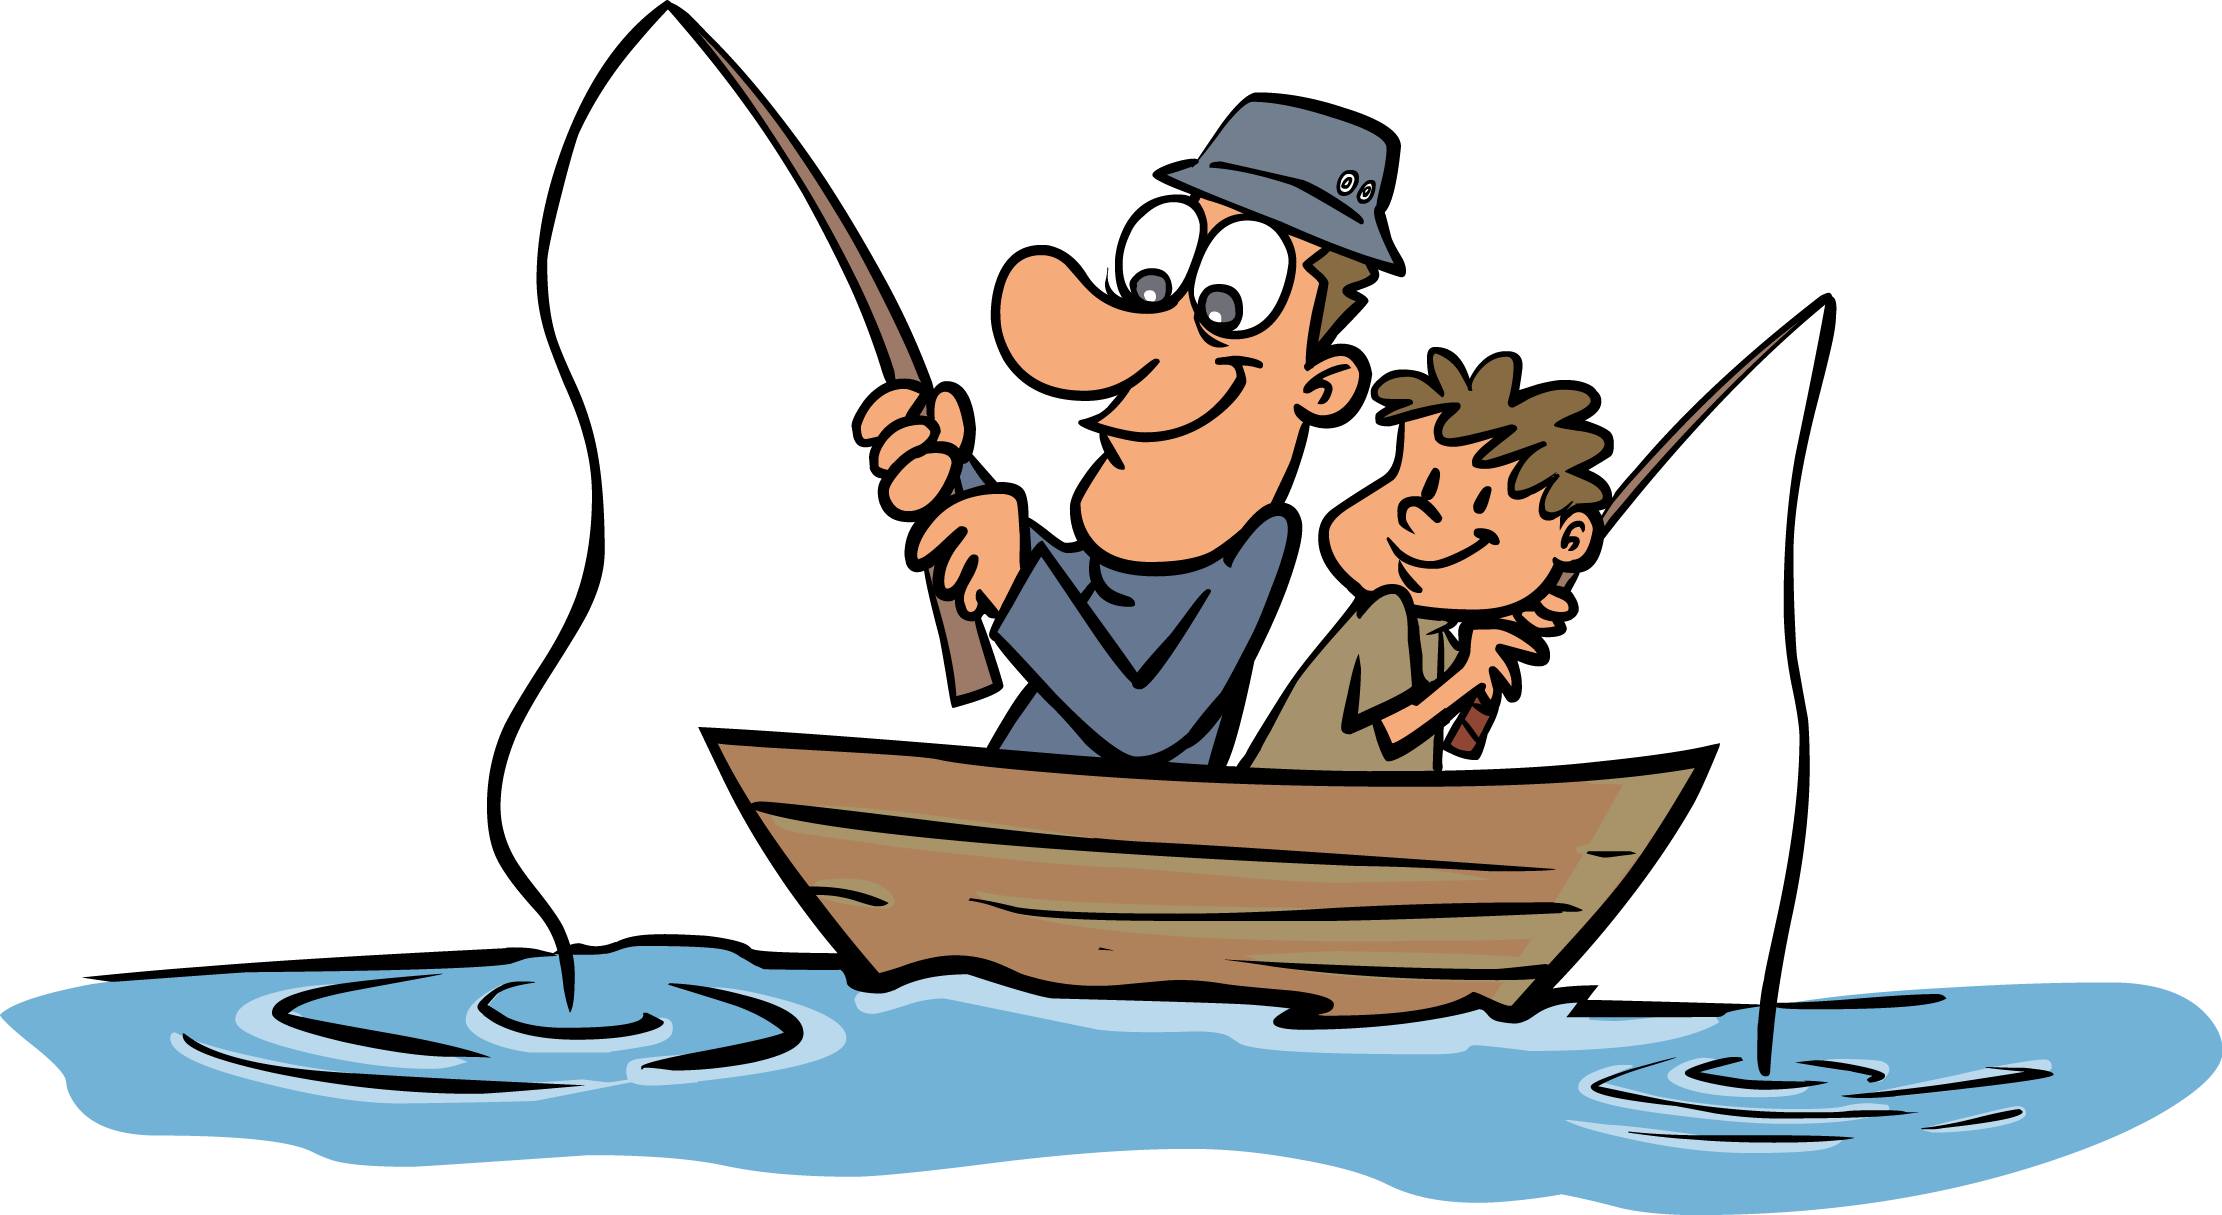 Fishing Cartoon 2222 1215 Fishing Humor